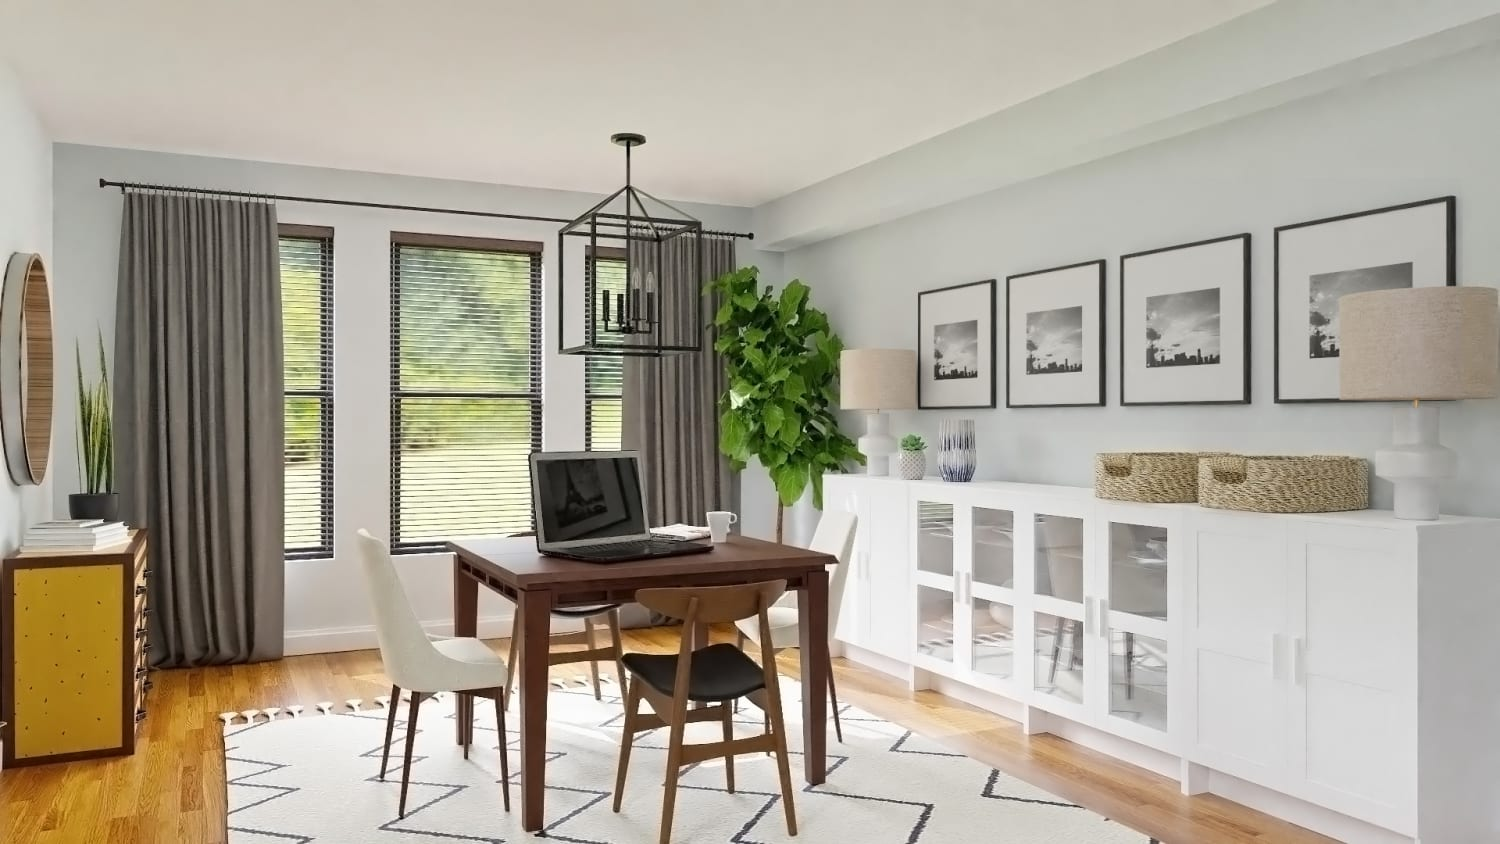 Gallery Wall: Mid Century Modern Dining Room Design By Spacejoy